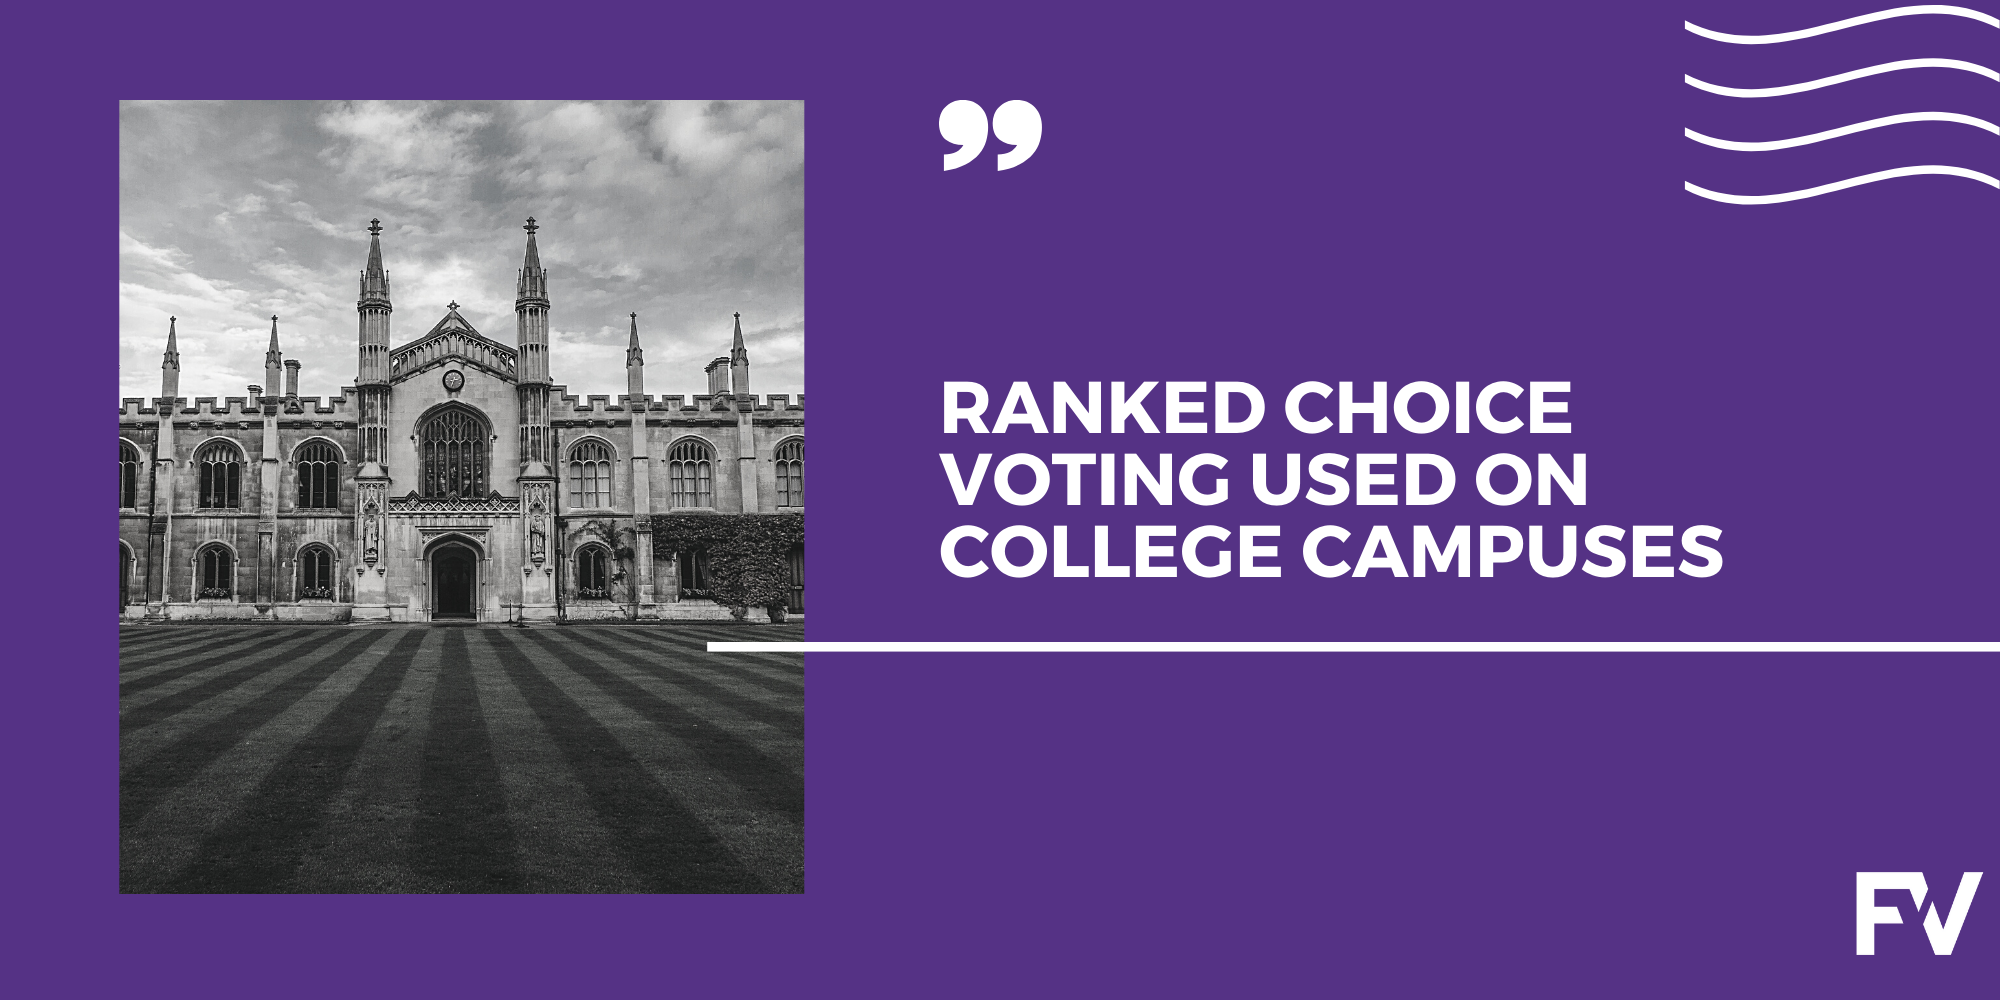 The Class of 2020 Led a Wave of Ranked Choice Voting Uses on College Campuses